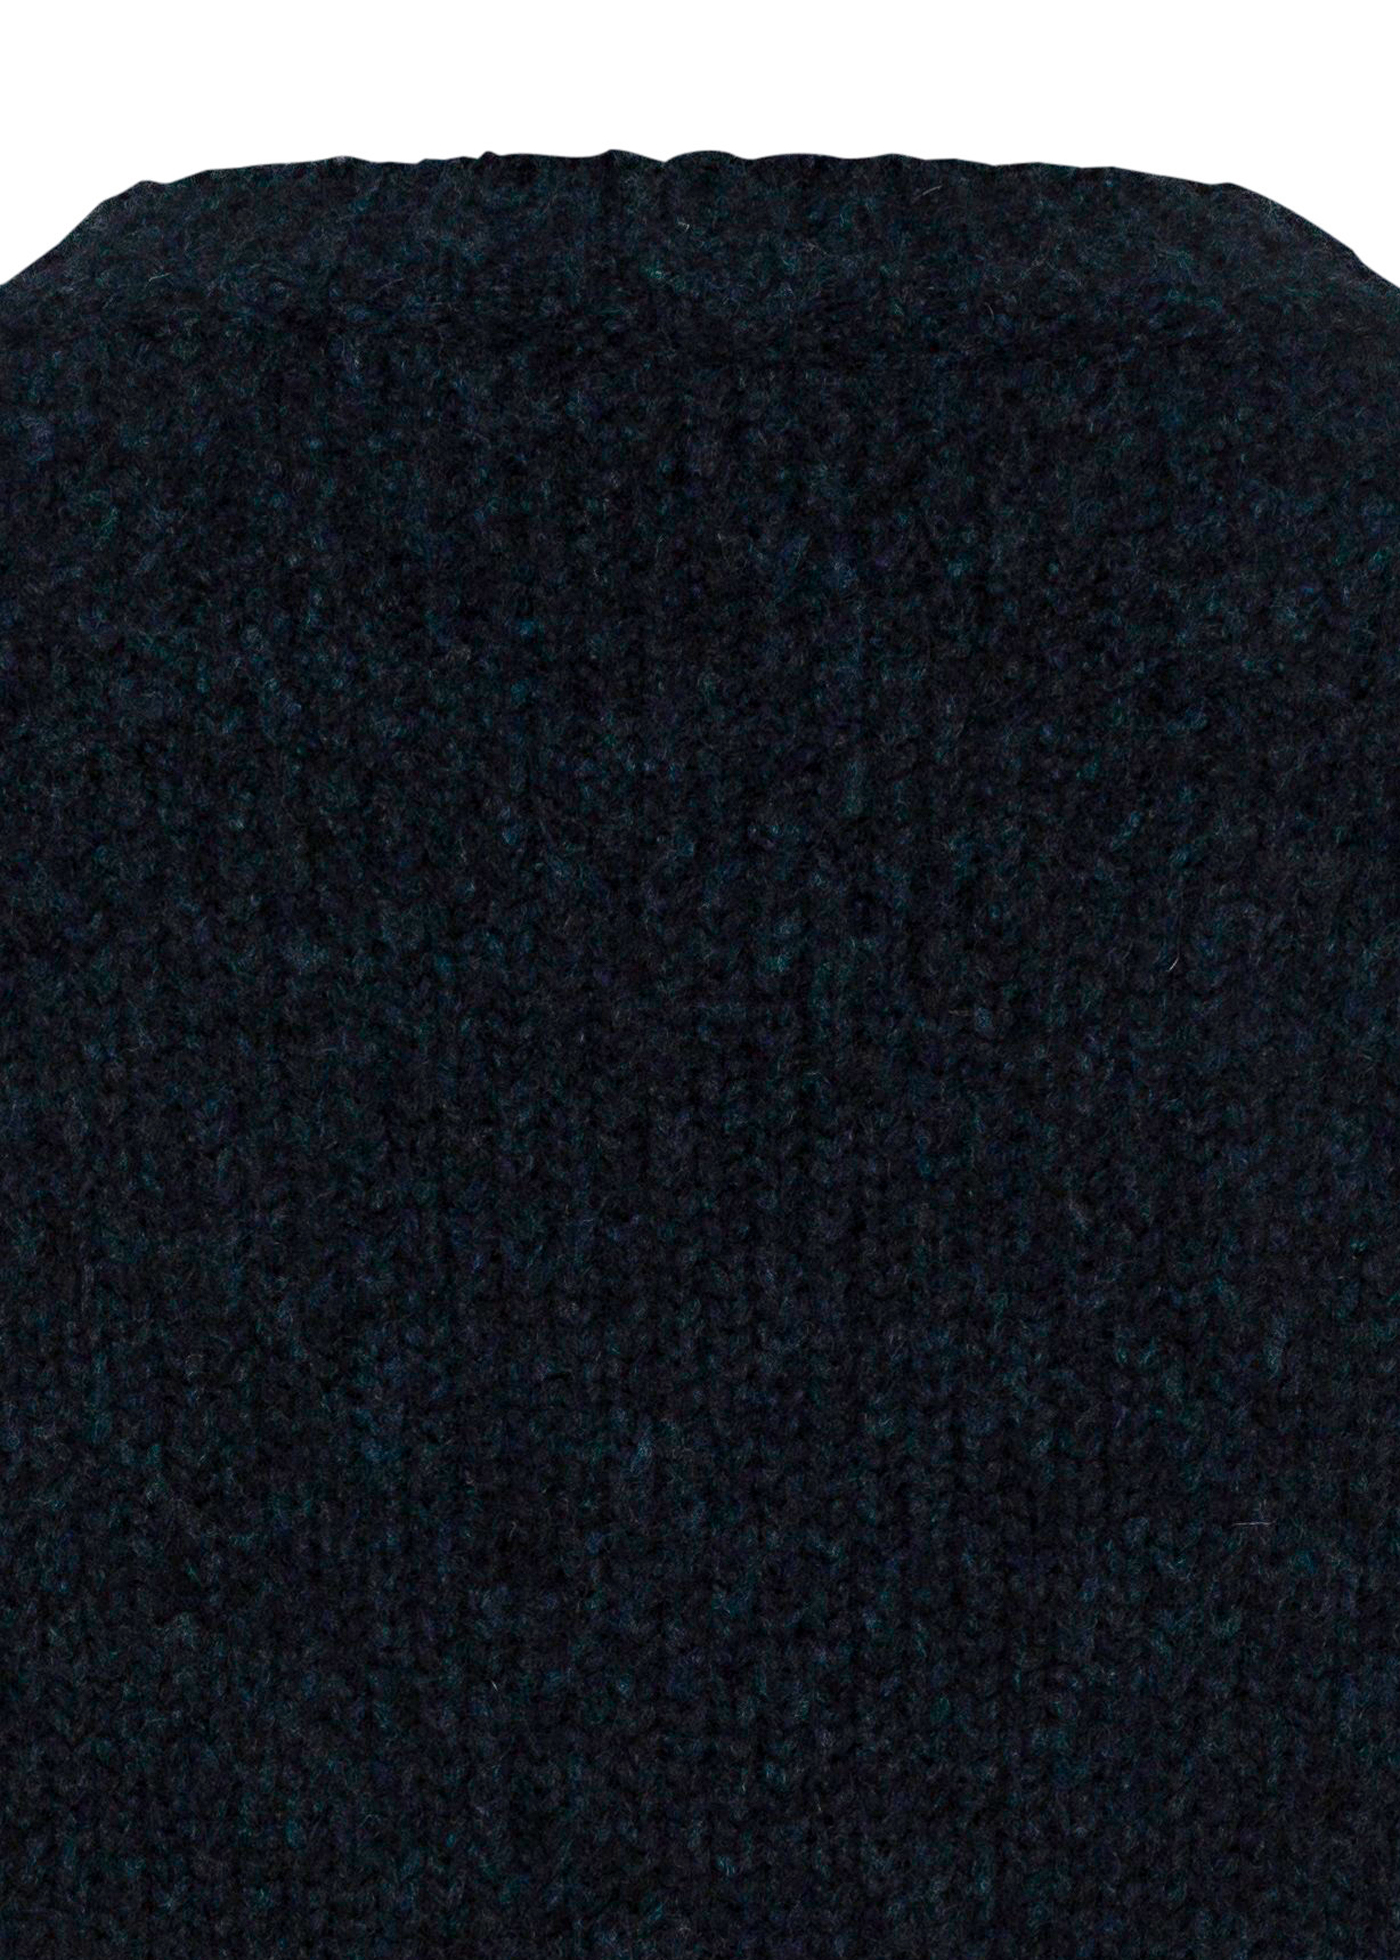 TIBBE 3705 M.K.SWEATER image number 3